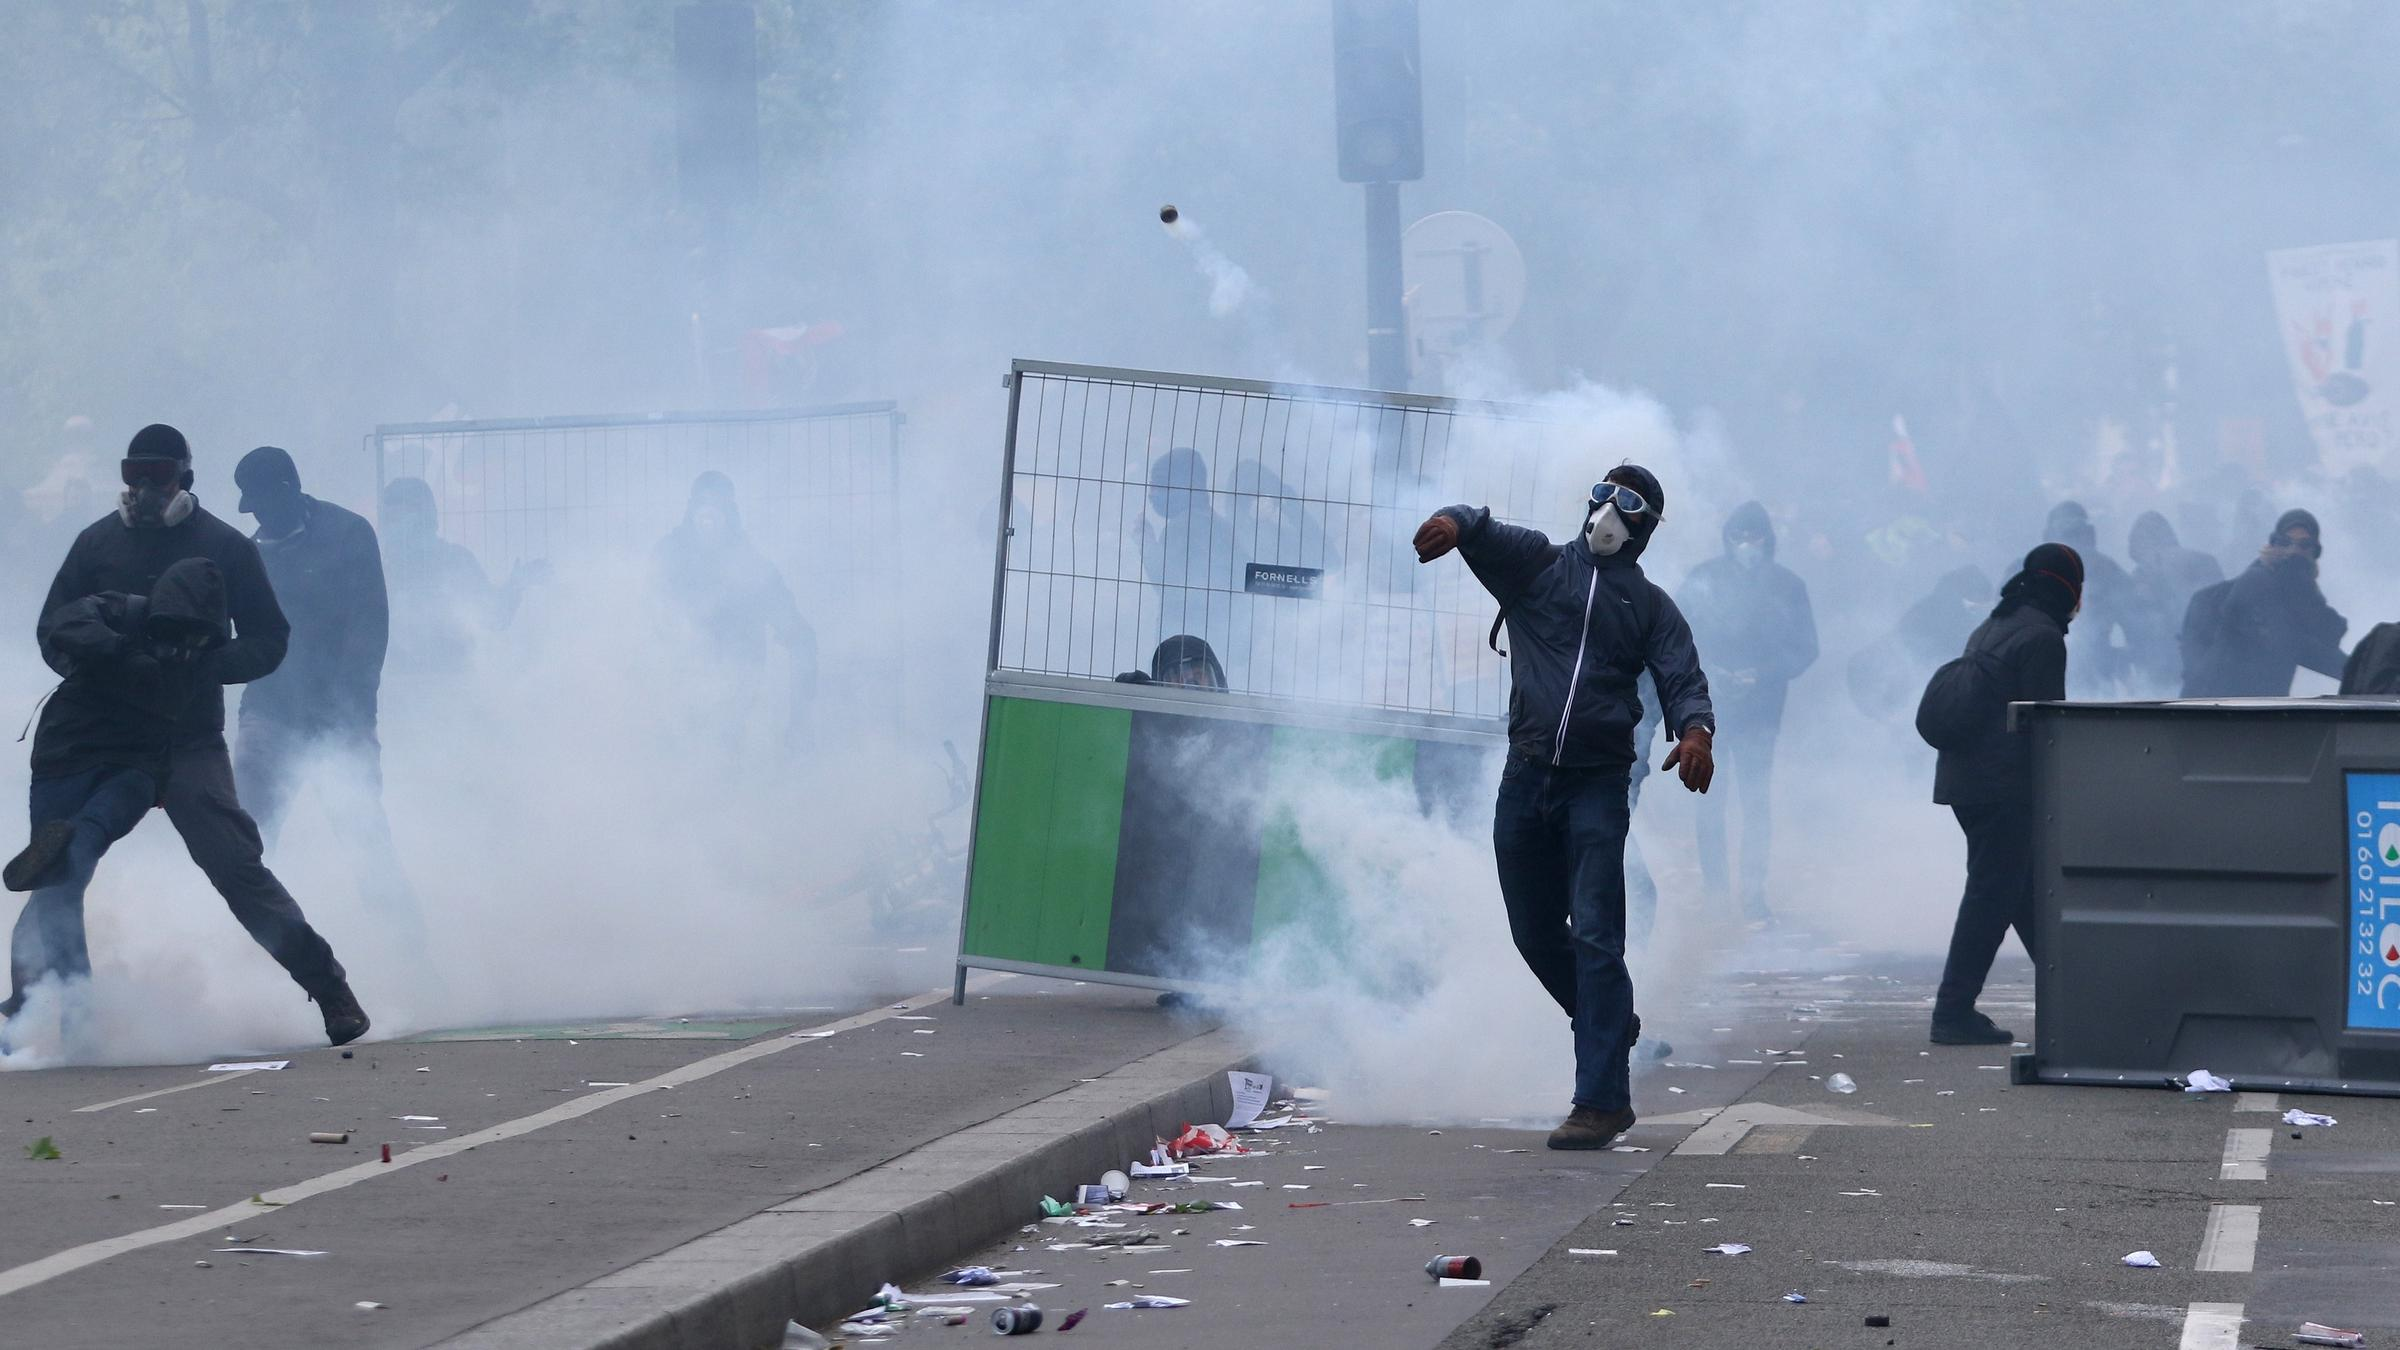 Paris police arrest almost 200 in May Day protests